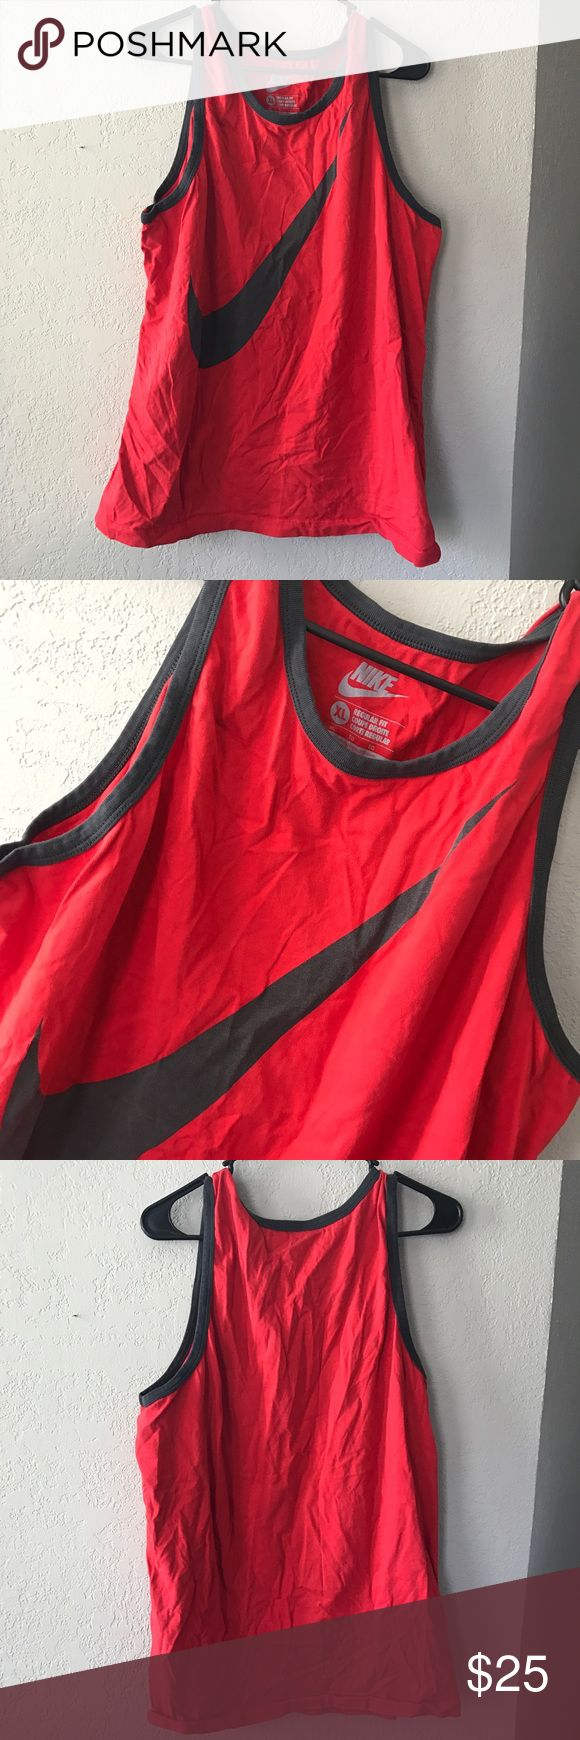 Men's Nike Tank Like new condition. No flaws. Red Nike tank top. Size XL. Regular fit.  No trades. Bundle to save. Ships same or next day Nike Shirts Tank Tops